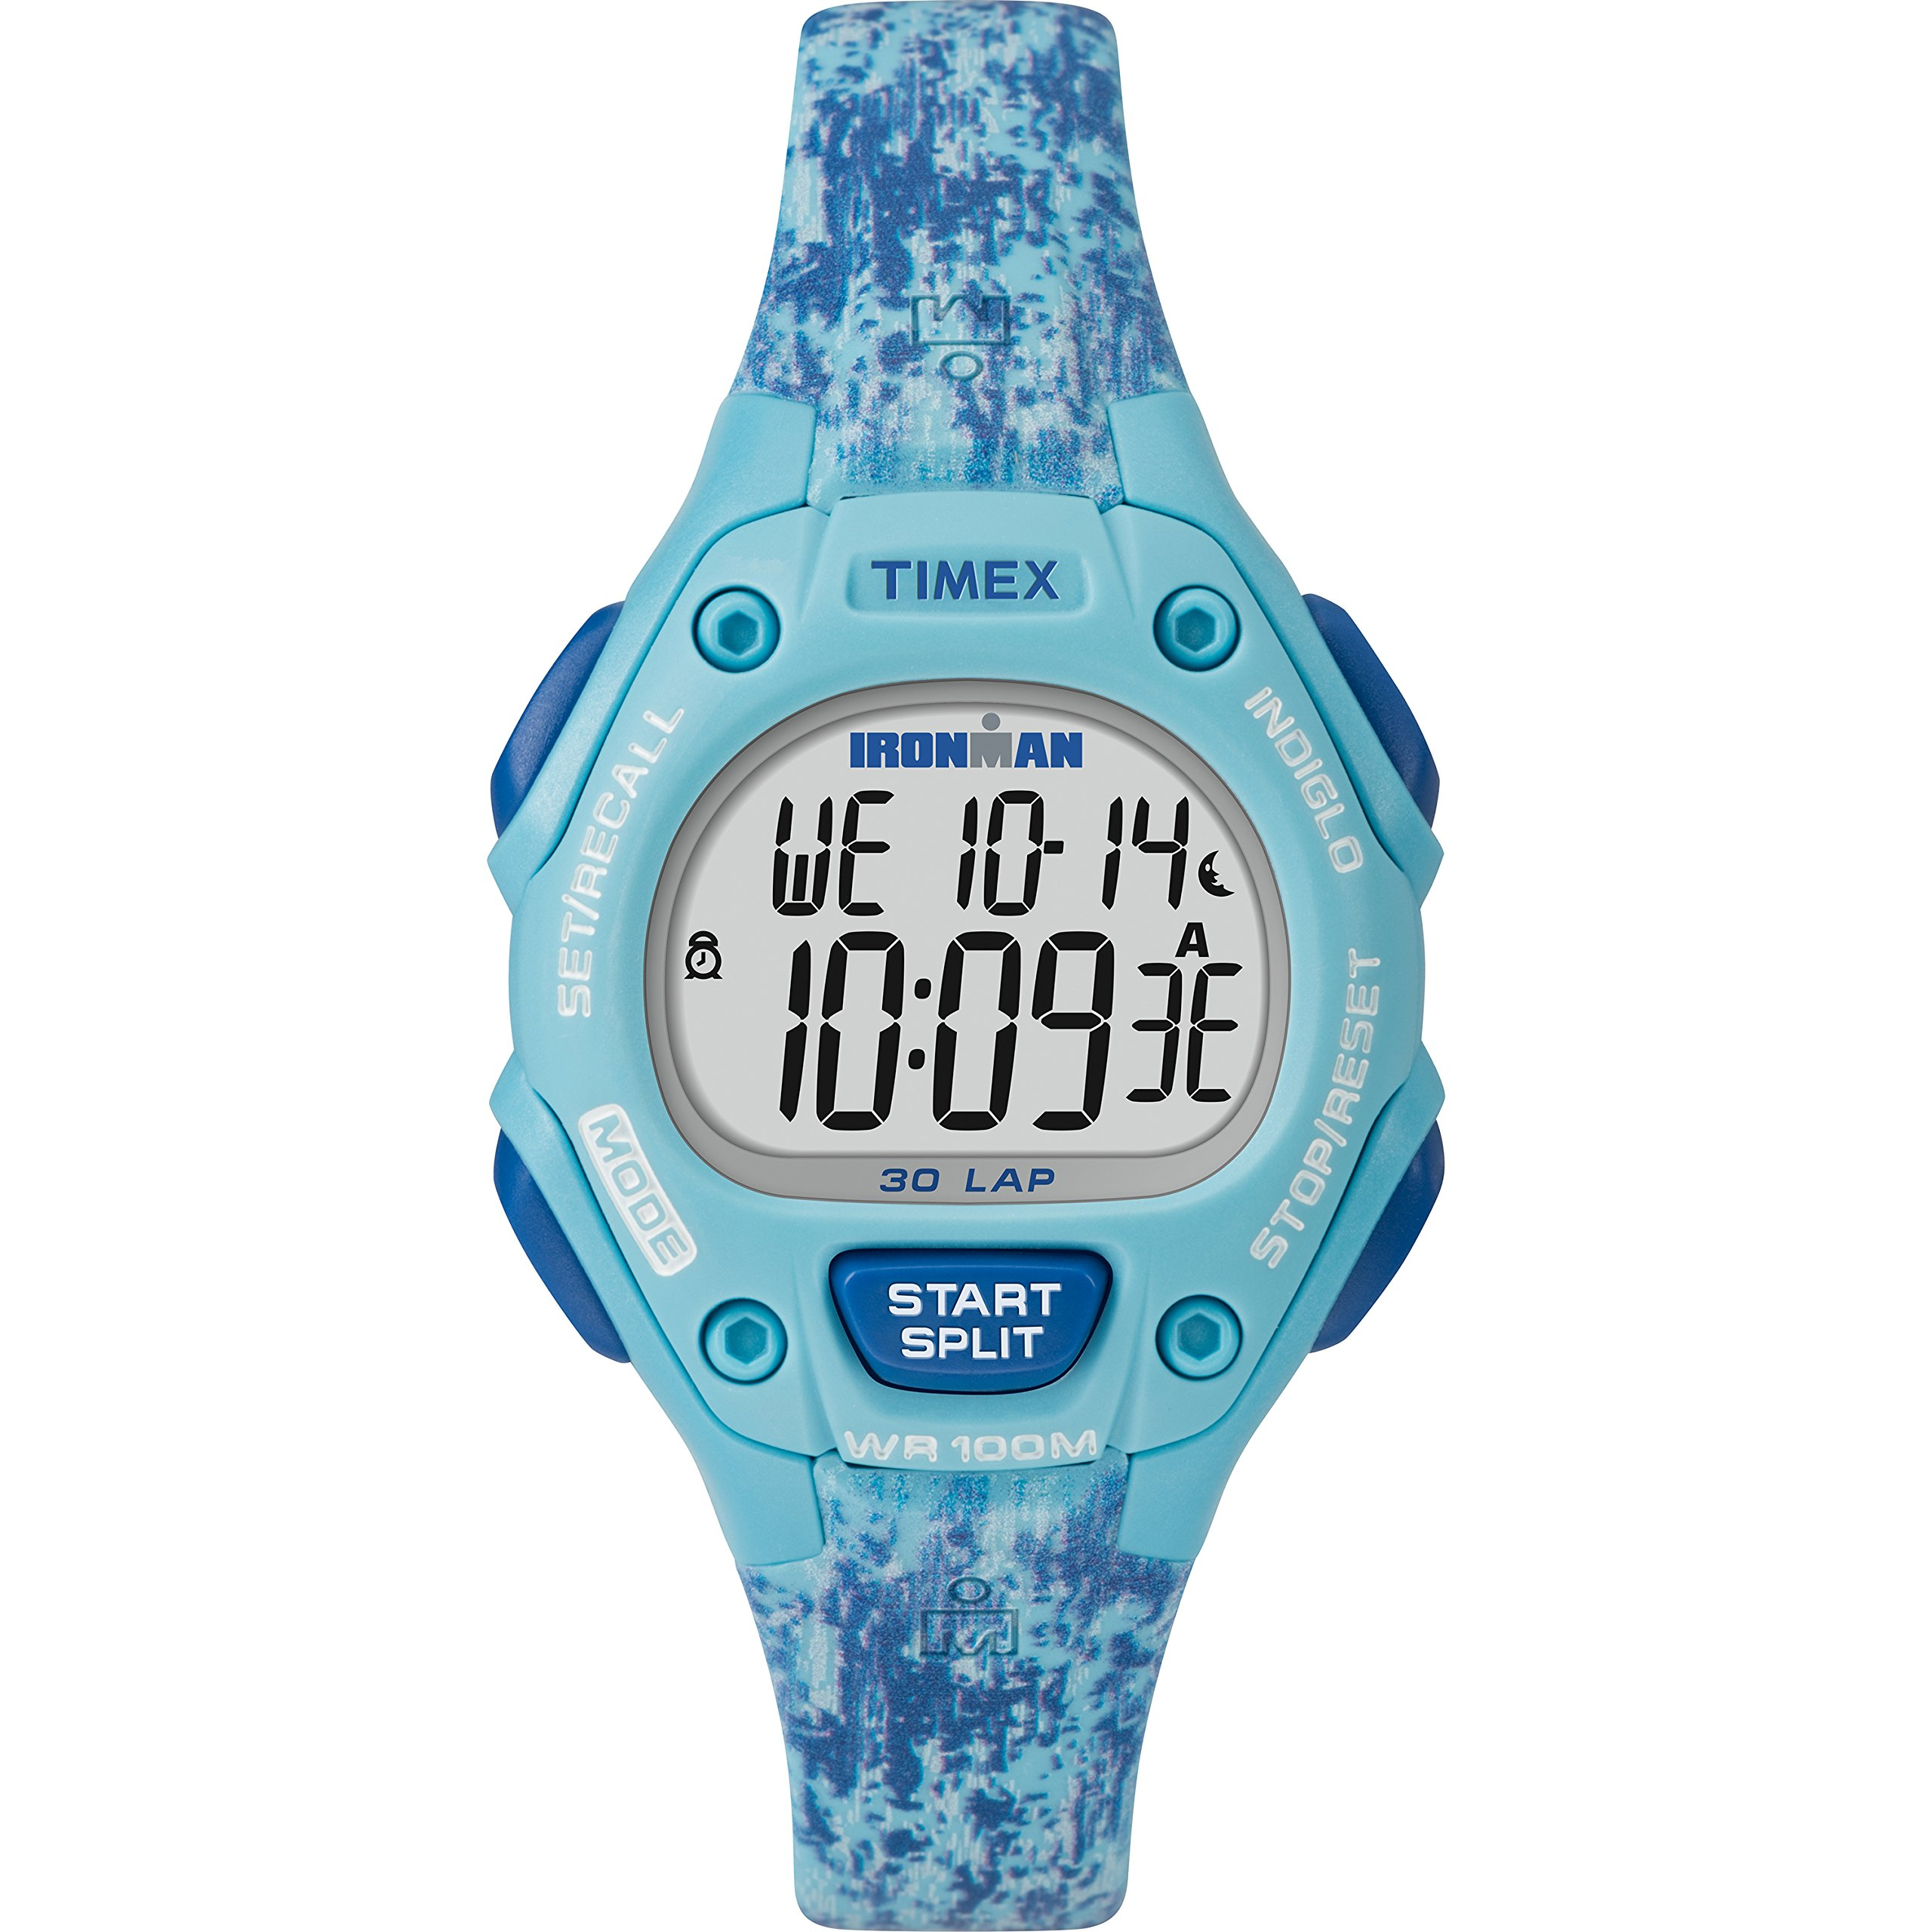 Timex Women's TW5M16200 Ironman Classic 30 Mid-Size Blue Dye Pattern Resin Strap Watch by Timex